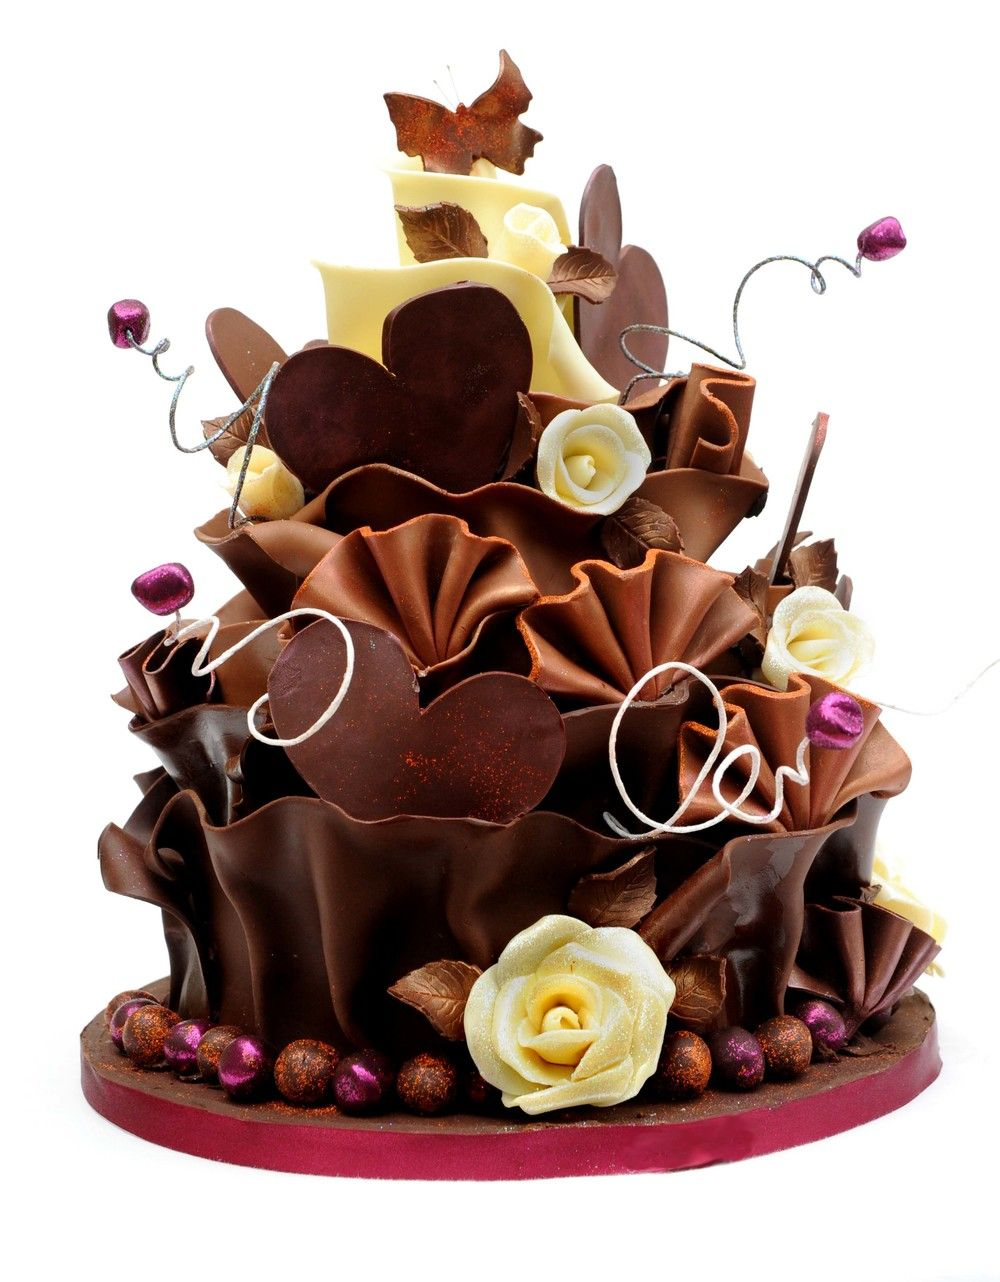 Pleasing Most Beautiful Chocolate Birthday Cakes Ever Most Beautiful Funny Birthday Cards Online Alyptdamsfinfo